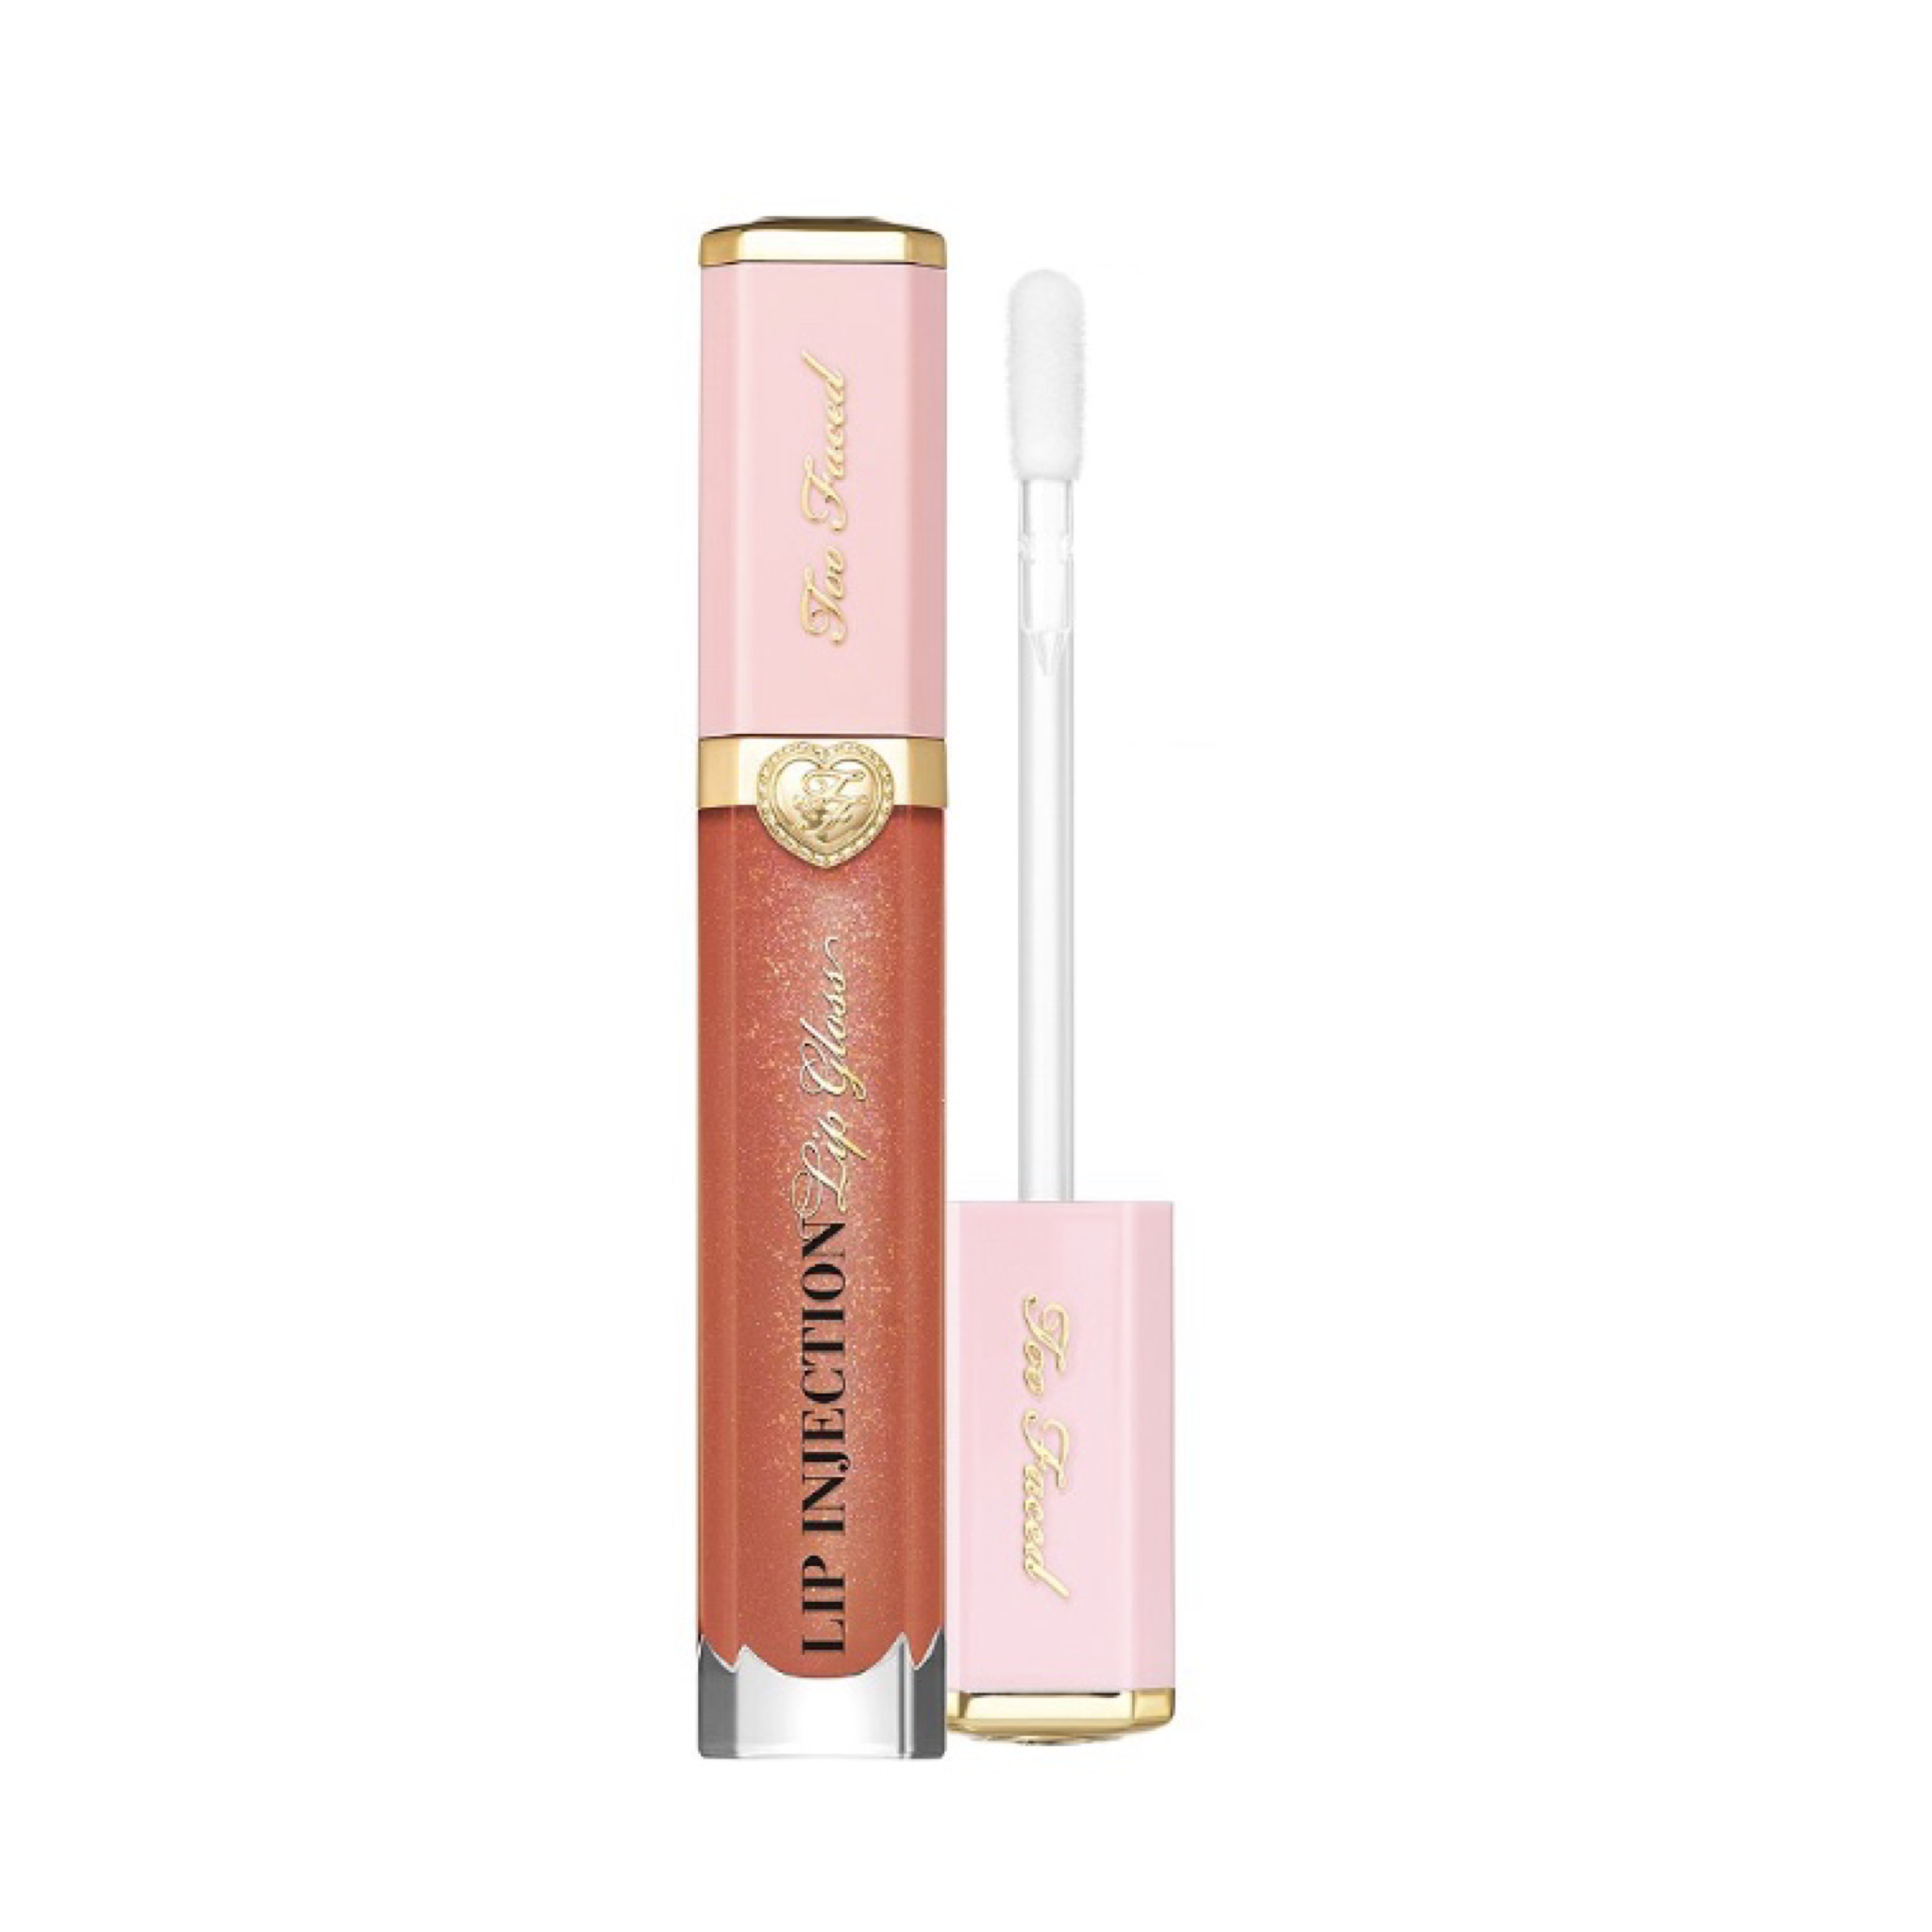 Too Faced Lip Injection Power Plump Lip Gloss